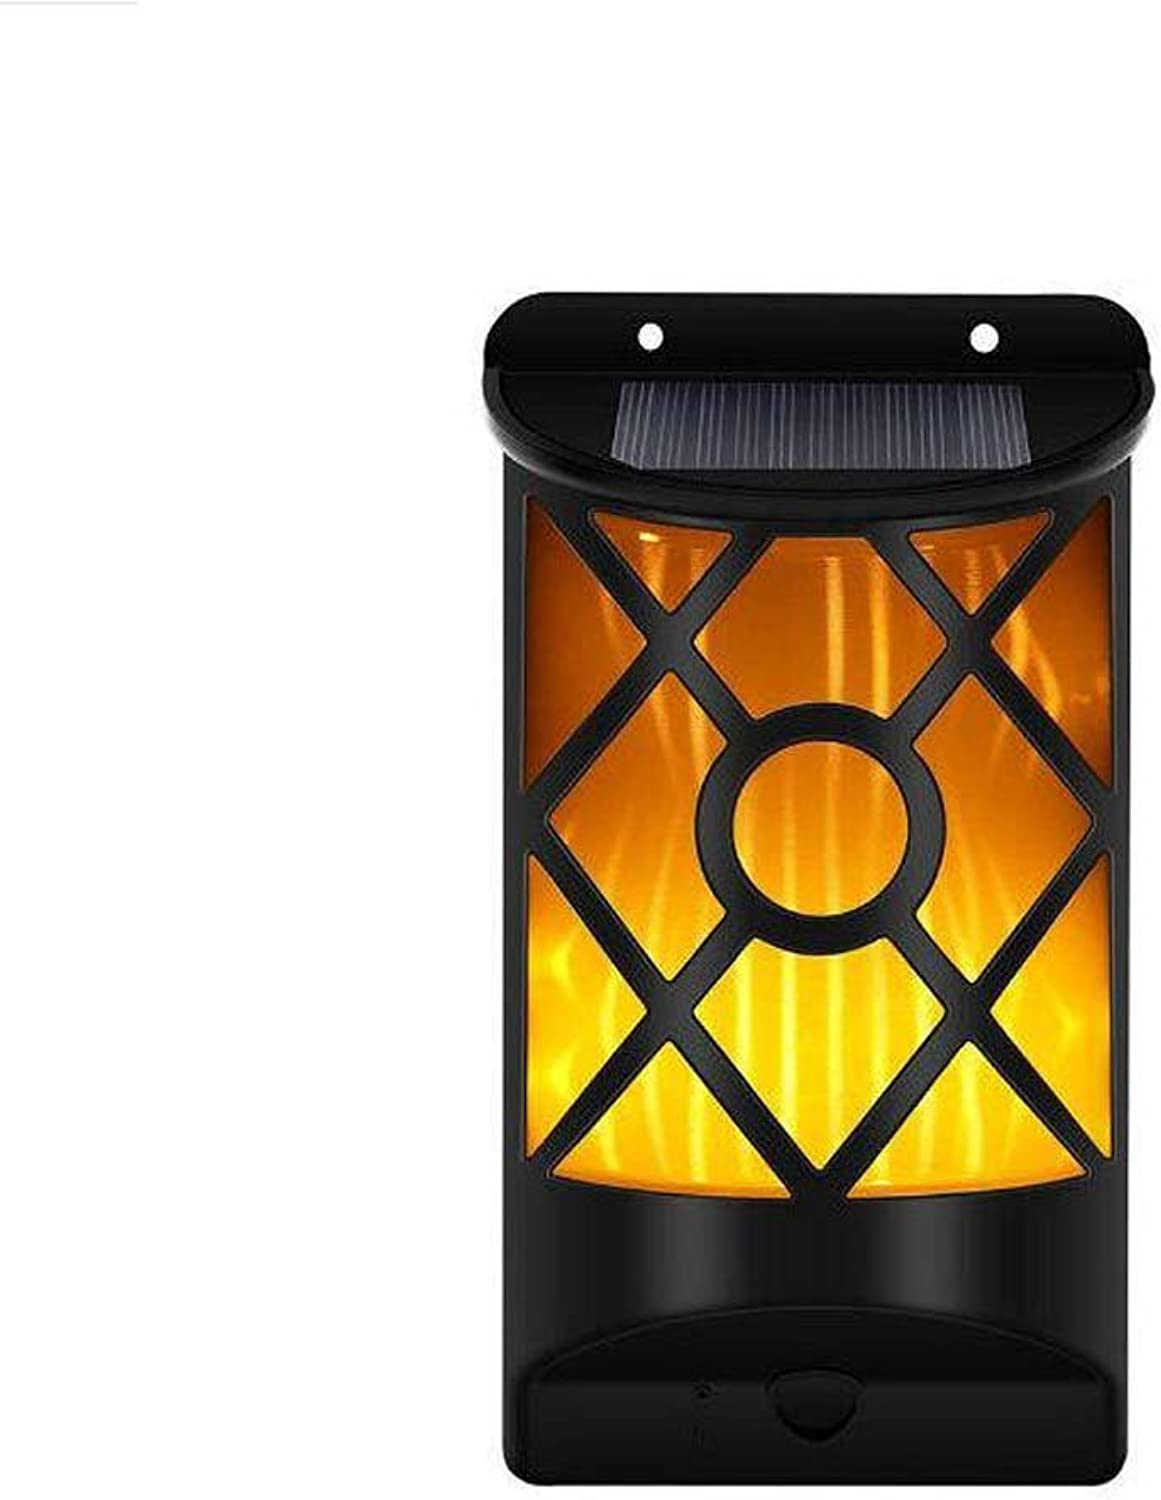 Solar Flame Lights,Garden Wall Lamp,Lawn Lights,Waterproof Landscape Lights,66 LED Flickering Path Dancing Lights,Outdoor Security Path Light,Dusk to Dawn Auto On Off for Patio Deck Yard